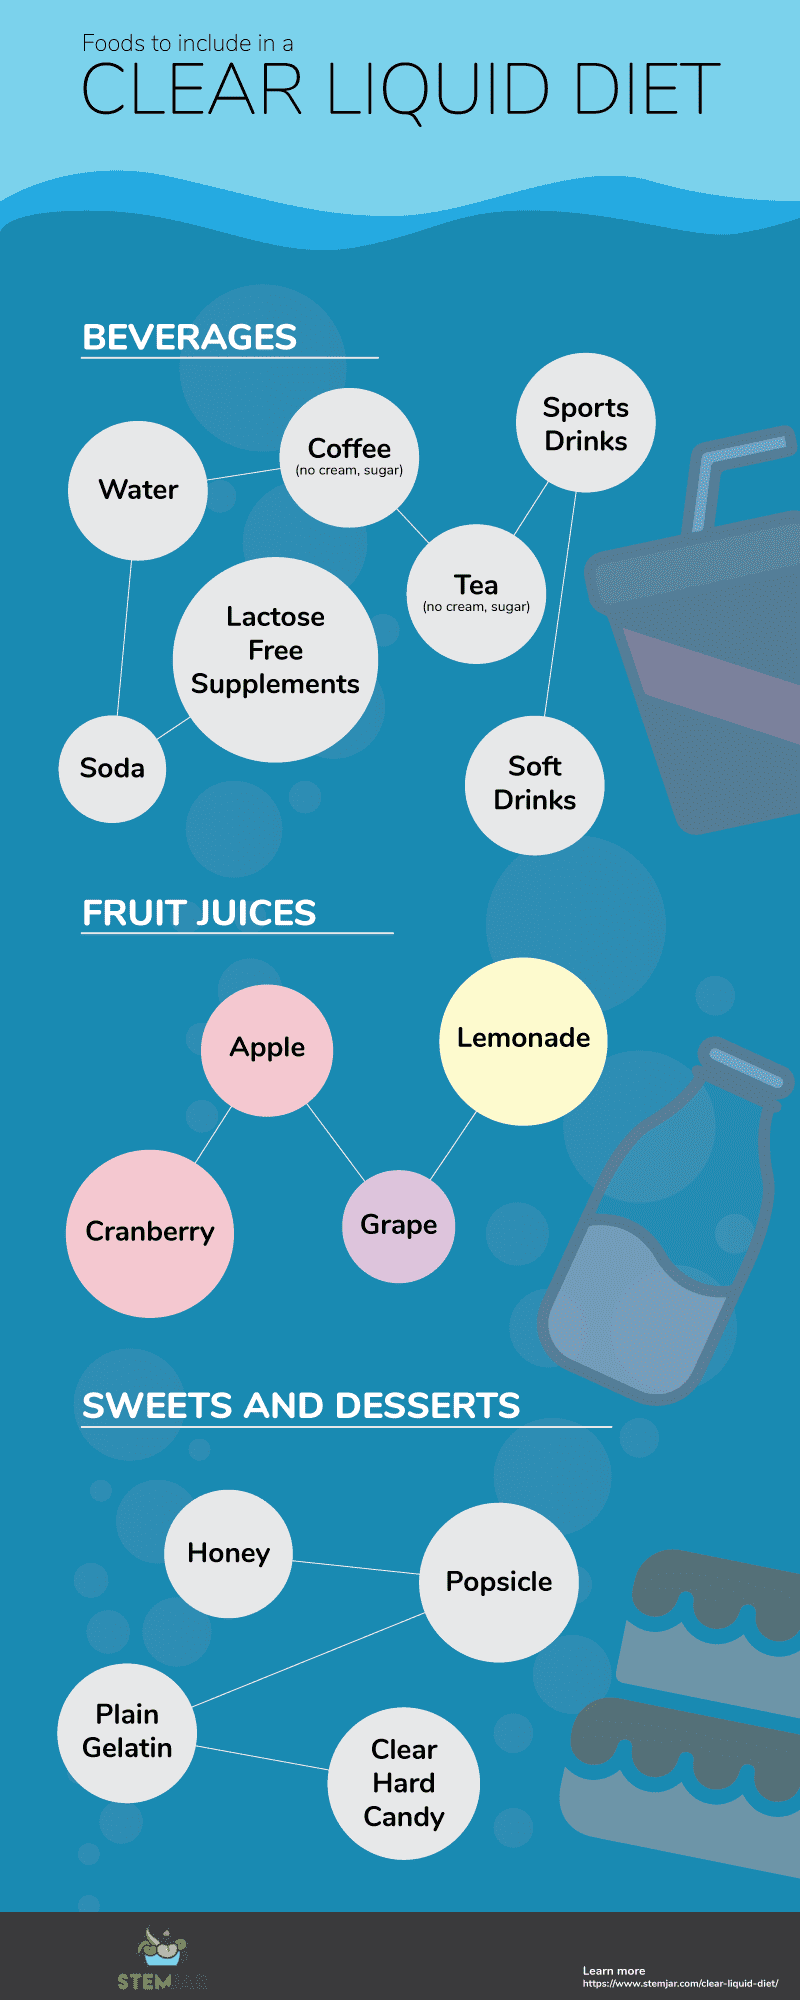 clear liquid diet info graphic